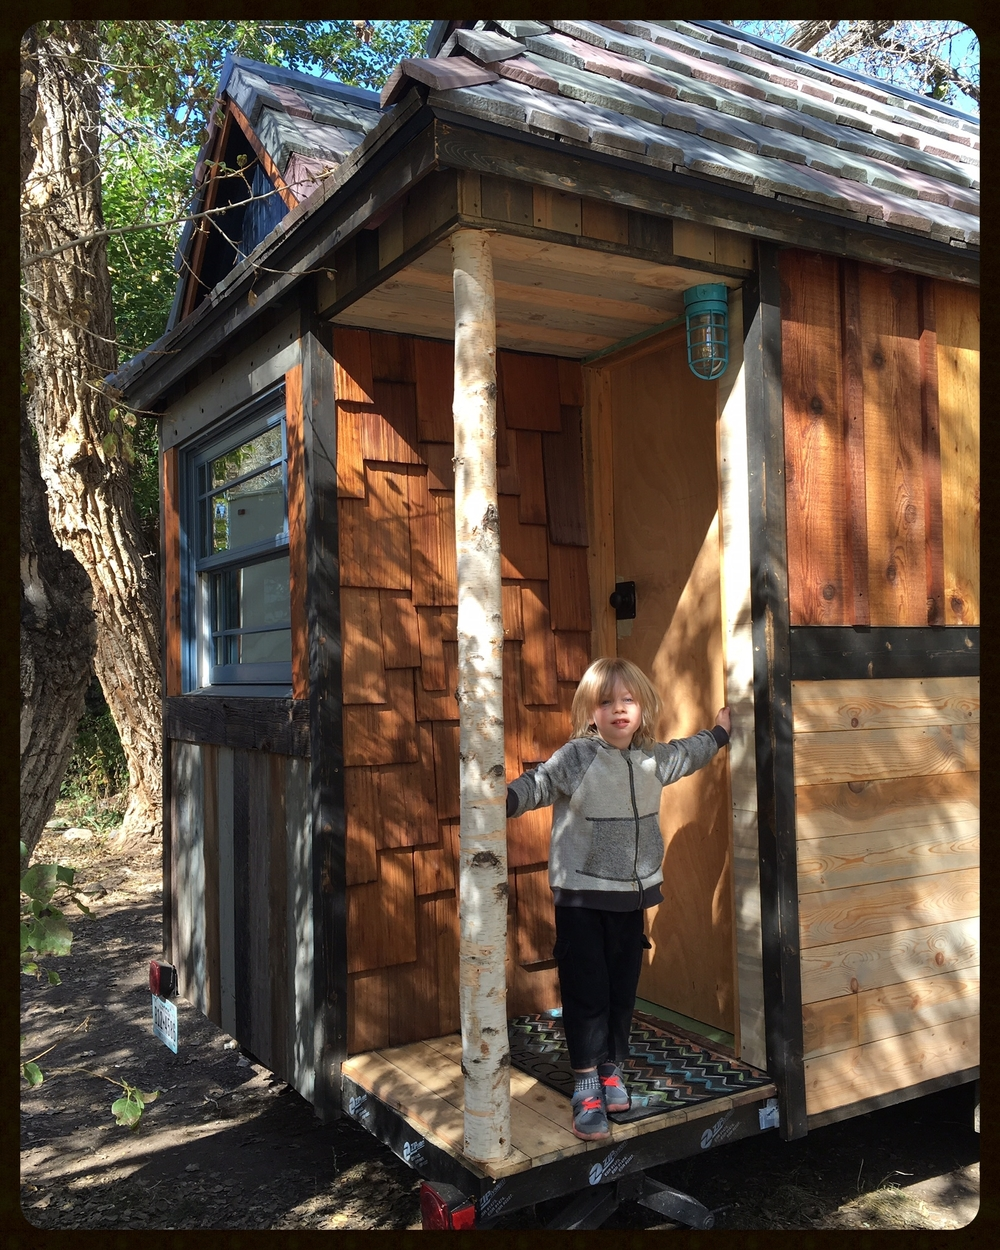 R.A.D posing on the porch at our winter parking spot in Loveland, Colorado. The front door is just temporary and there's more porch trim to complete, but we had fun figuring out the final organizational details inside to make life comfortable in 172sqft plus the loft! <3